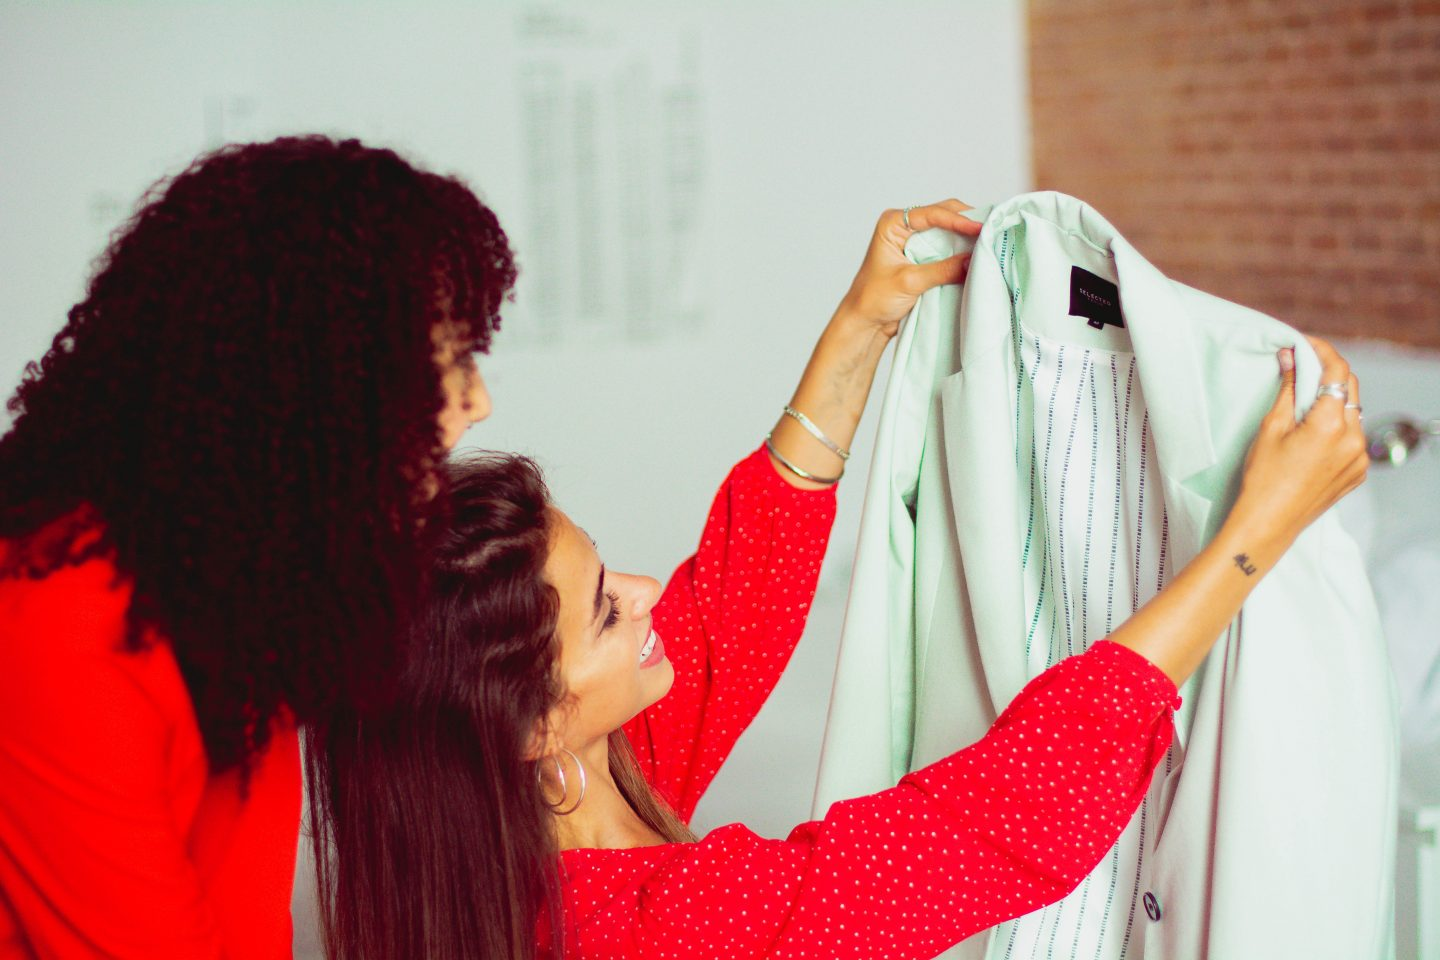 Sharing is caring — Spanish fashion company refreshes closets and reduces environmental harm | The Switchers